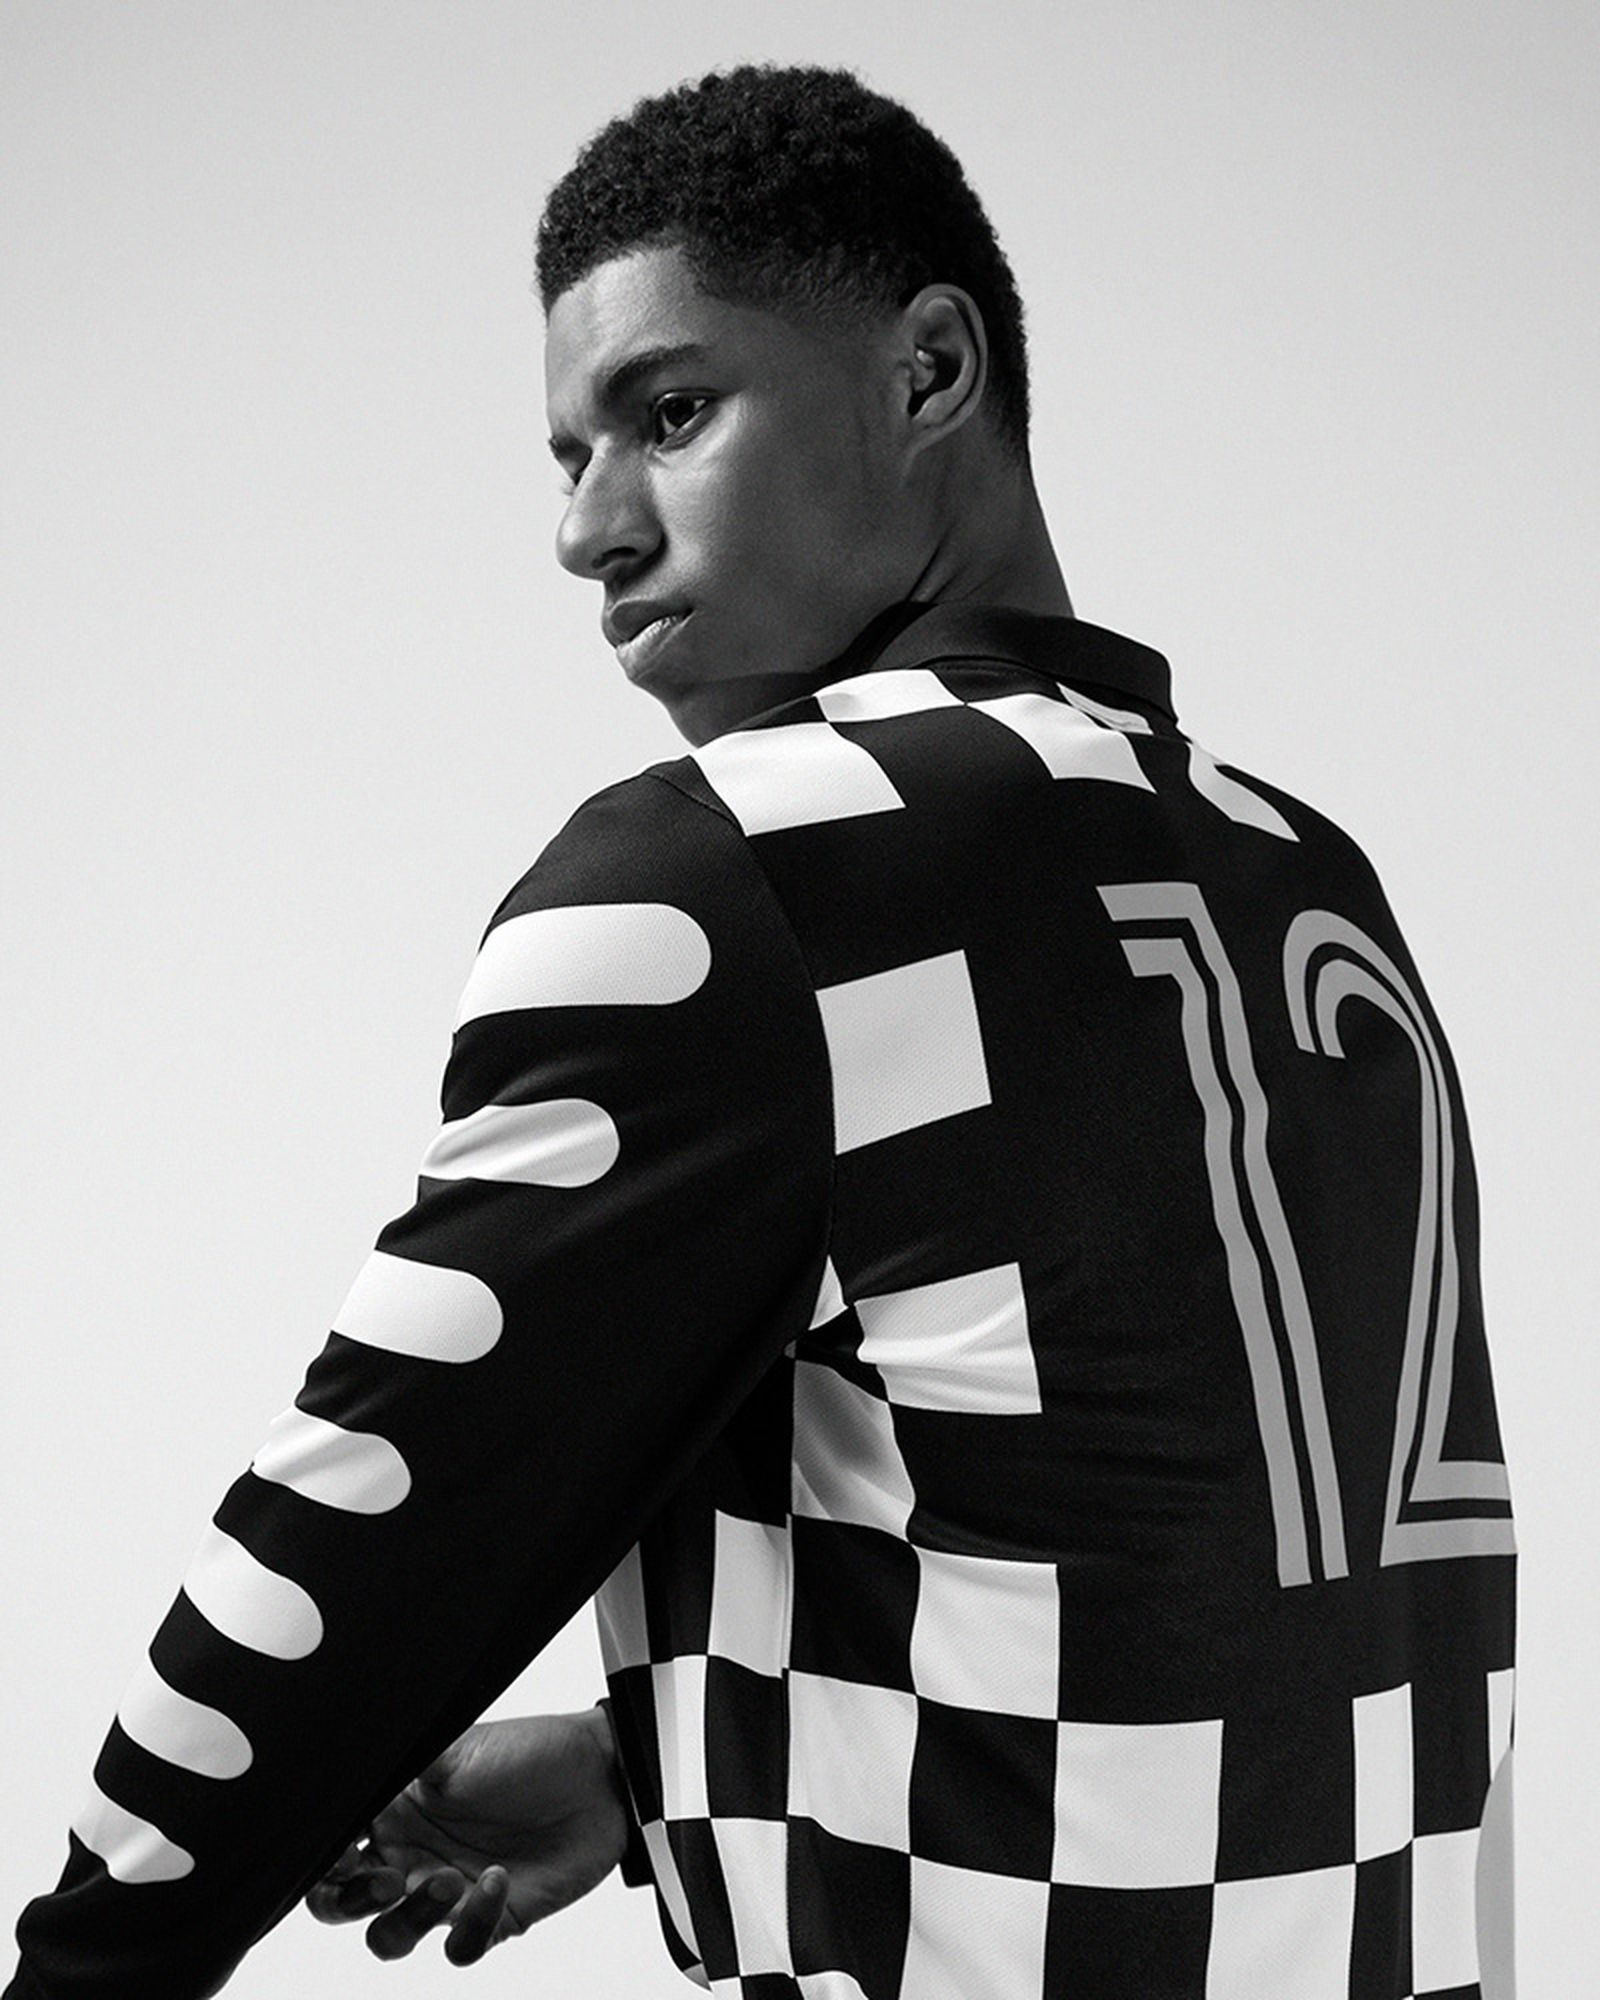 marcus rashford off white world cup collection interview 2018 FIFA World Cup OFF–WHITE x Nike virgil abloh